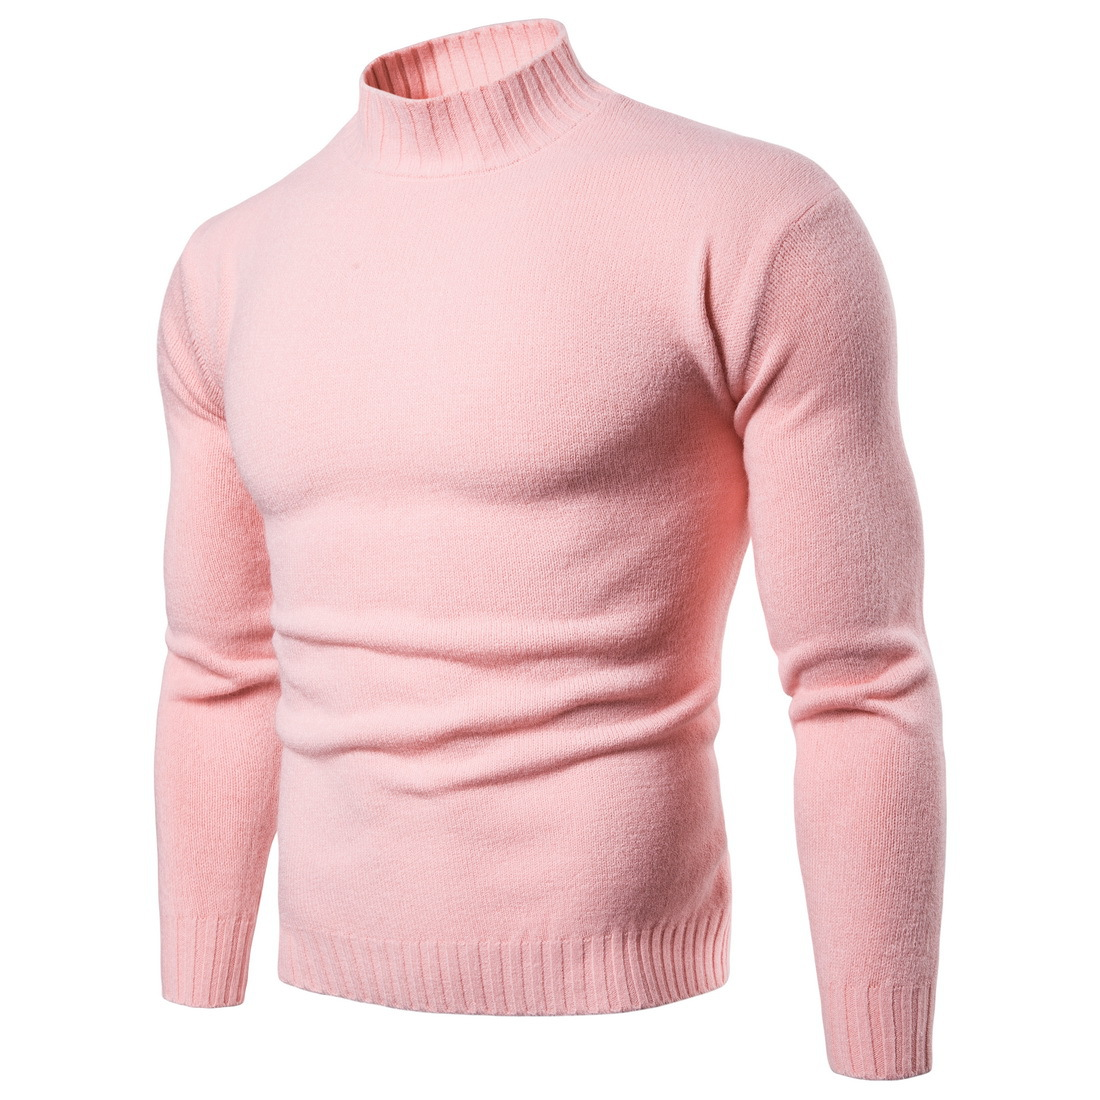 2019 New Autumn Mens Sweaters Casual Male Turtleneck Man's Solid Knit Shirts Slim Brand Clothing Sweater Leisure Tops S-XXL